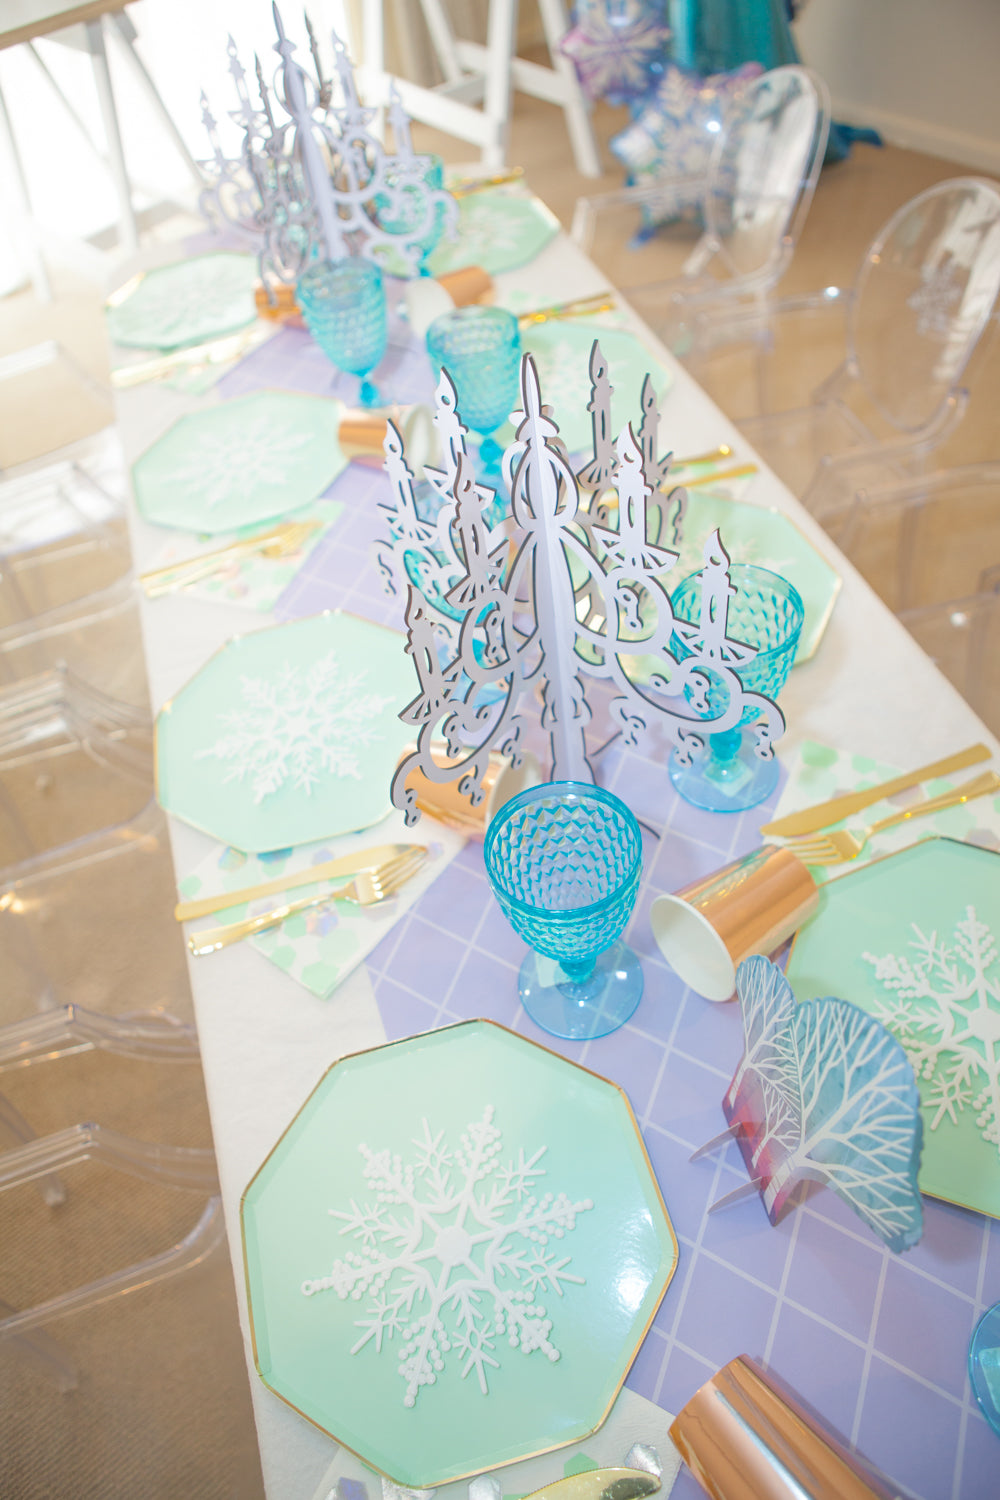 White Wooden Table Centerpiece